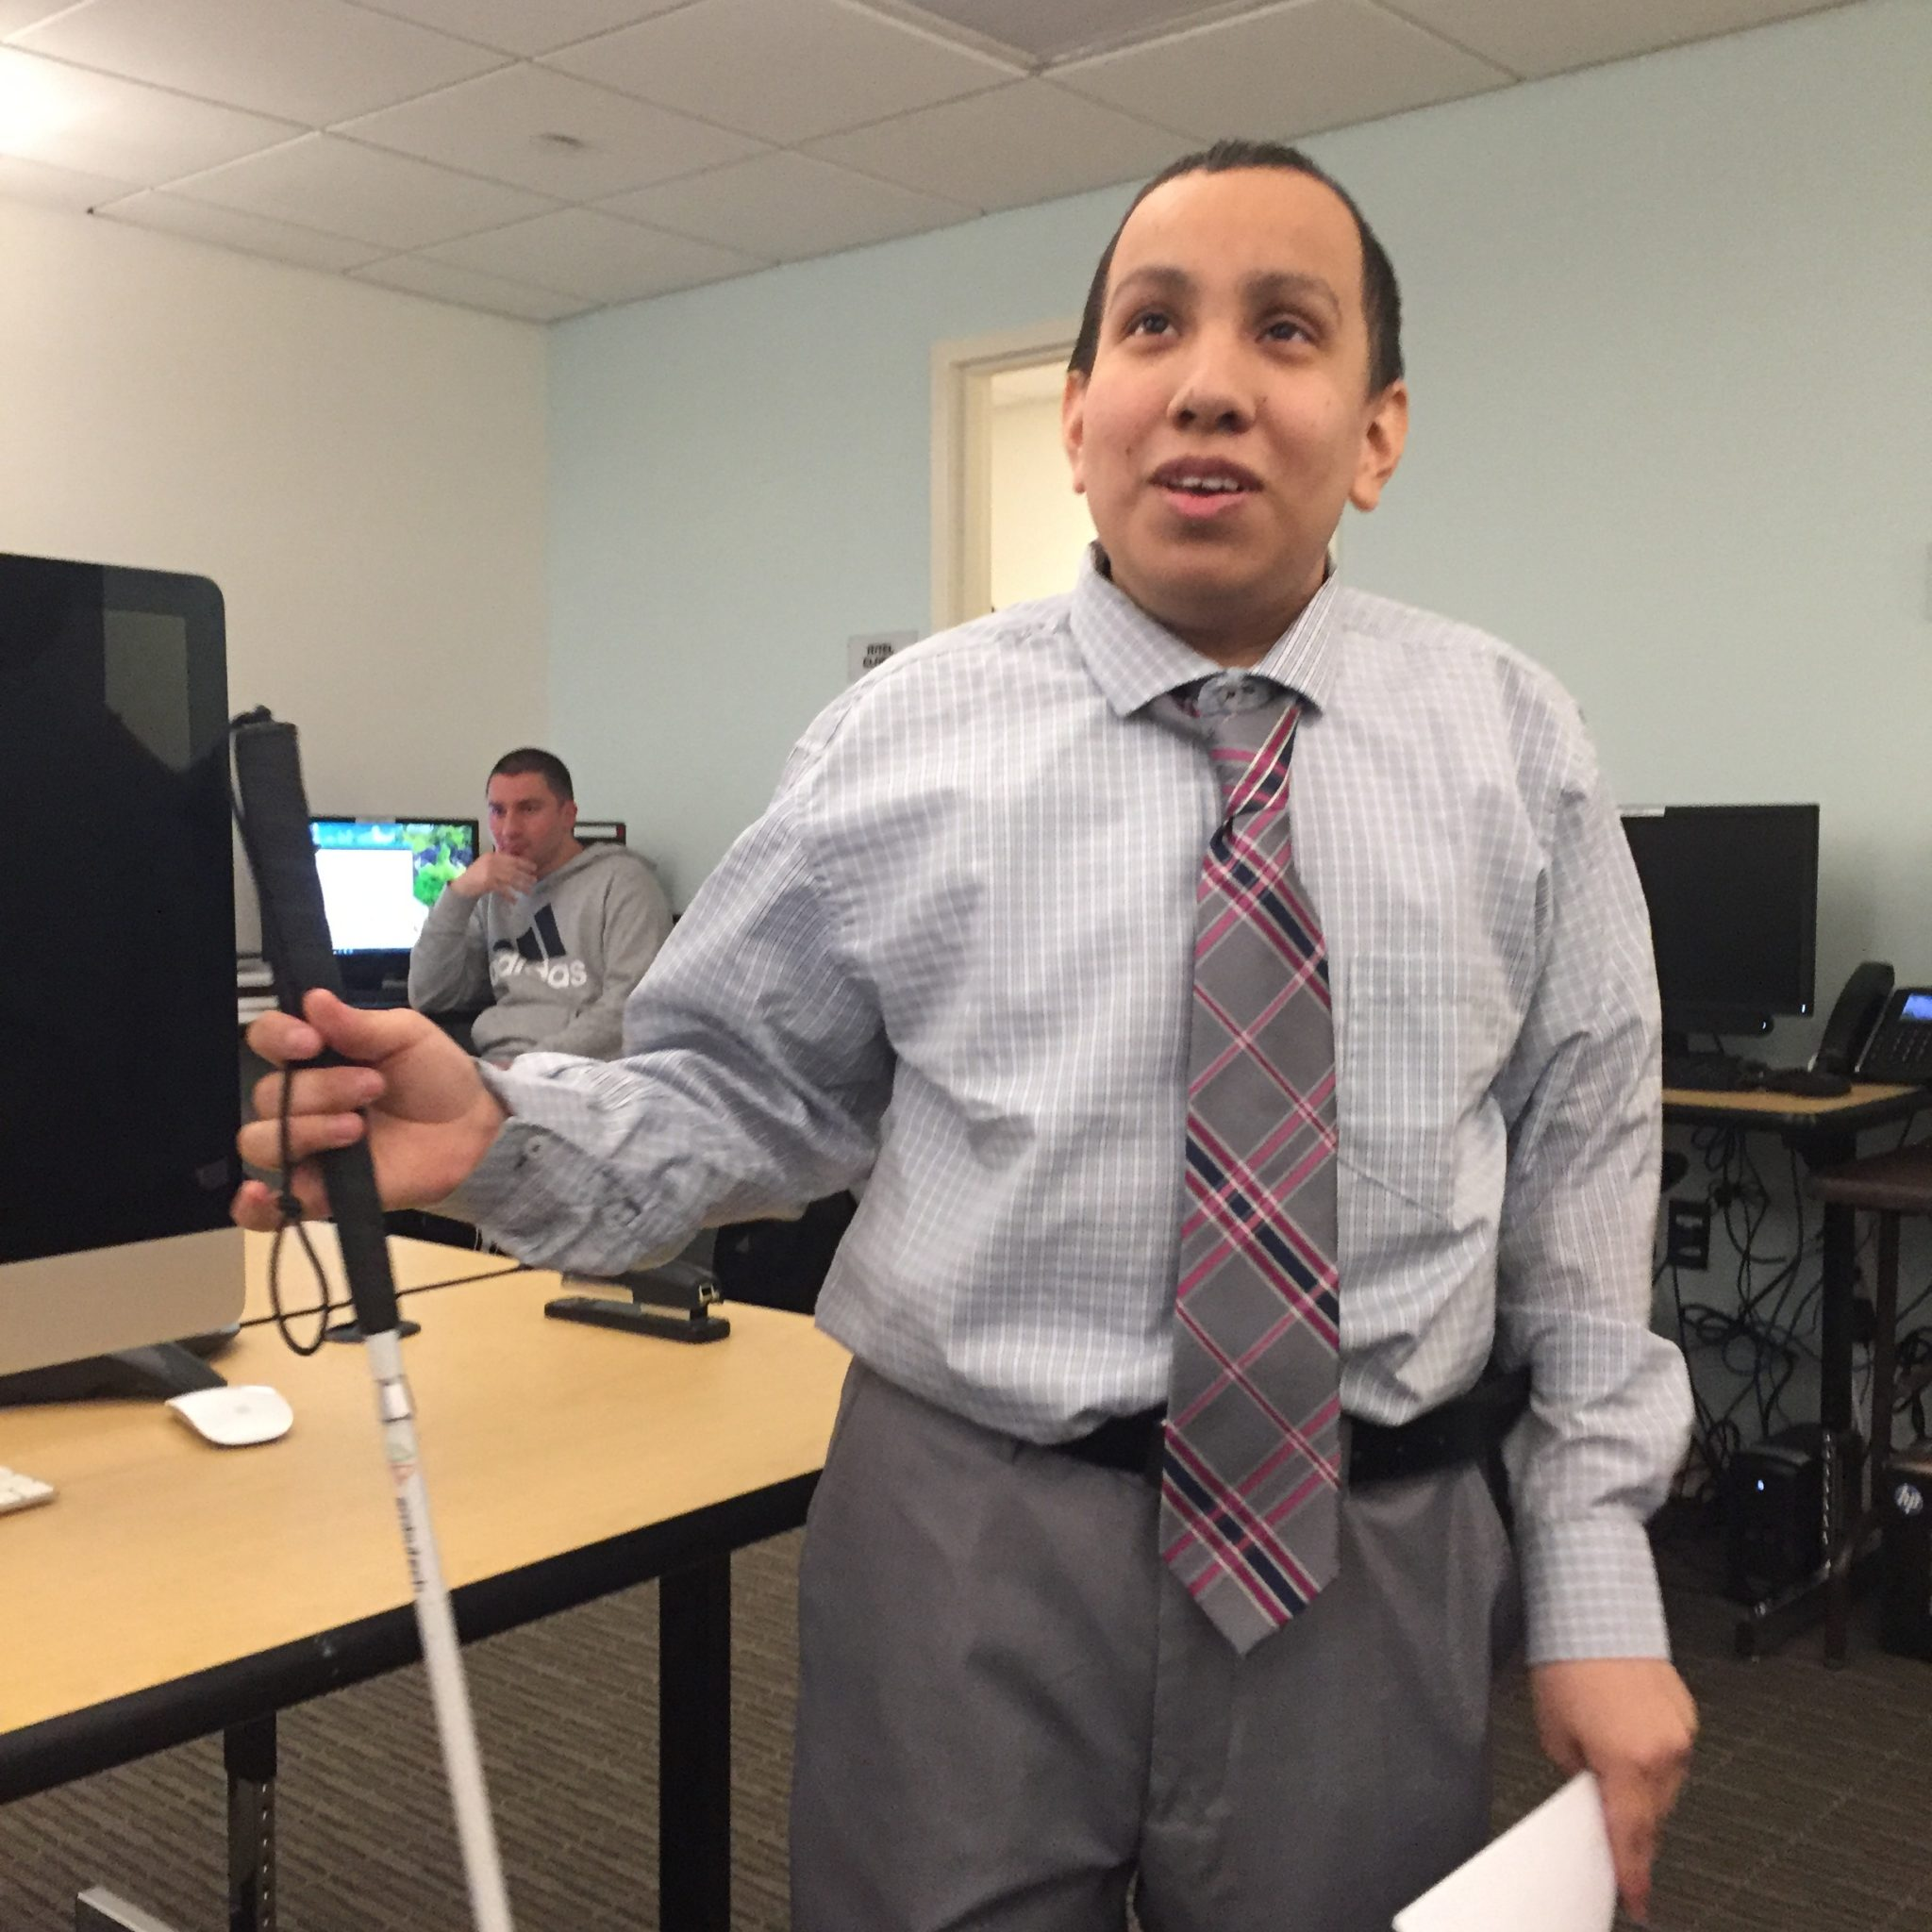 Image description: A young man holding a cane with one hand, and a piece of paper in the other, wearing a light gray button downshirt, gray and red plaid tie, and gray pants stands inside a computer lab.